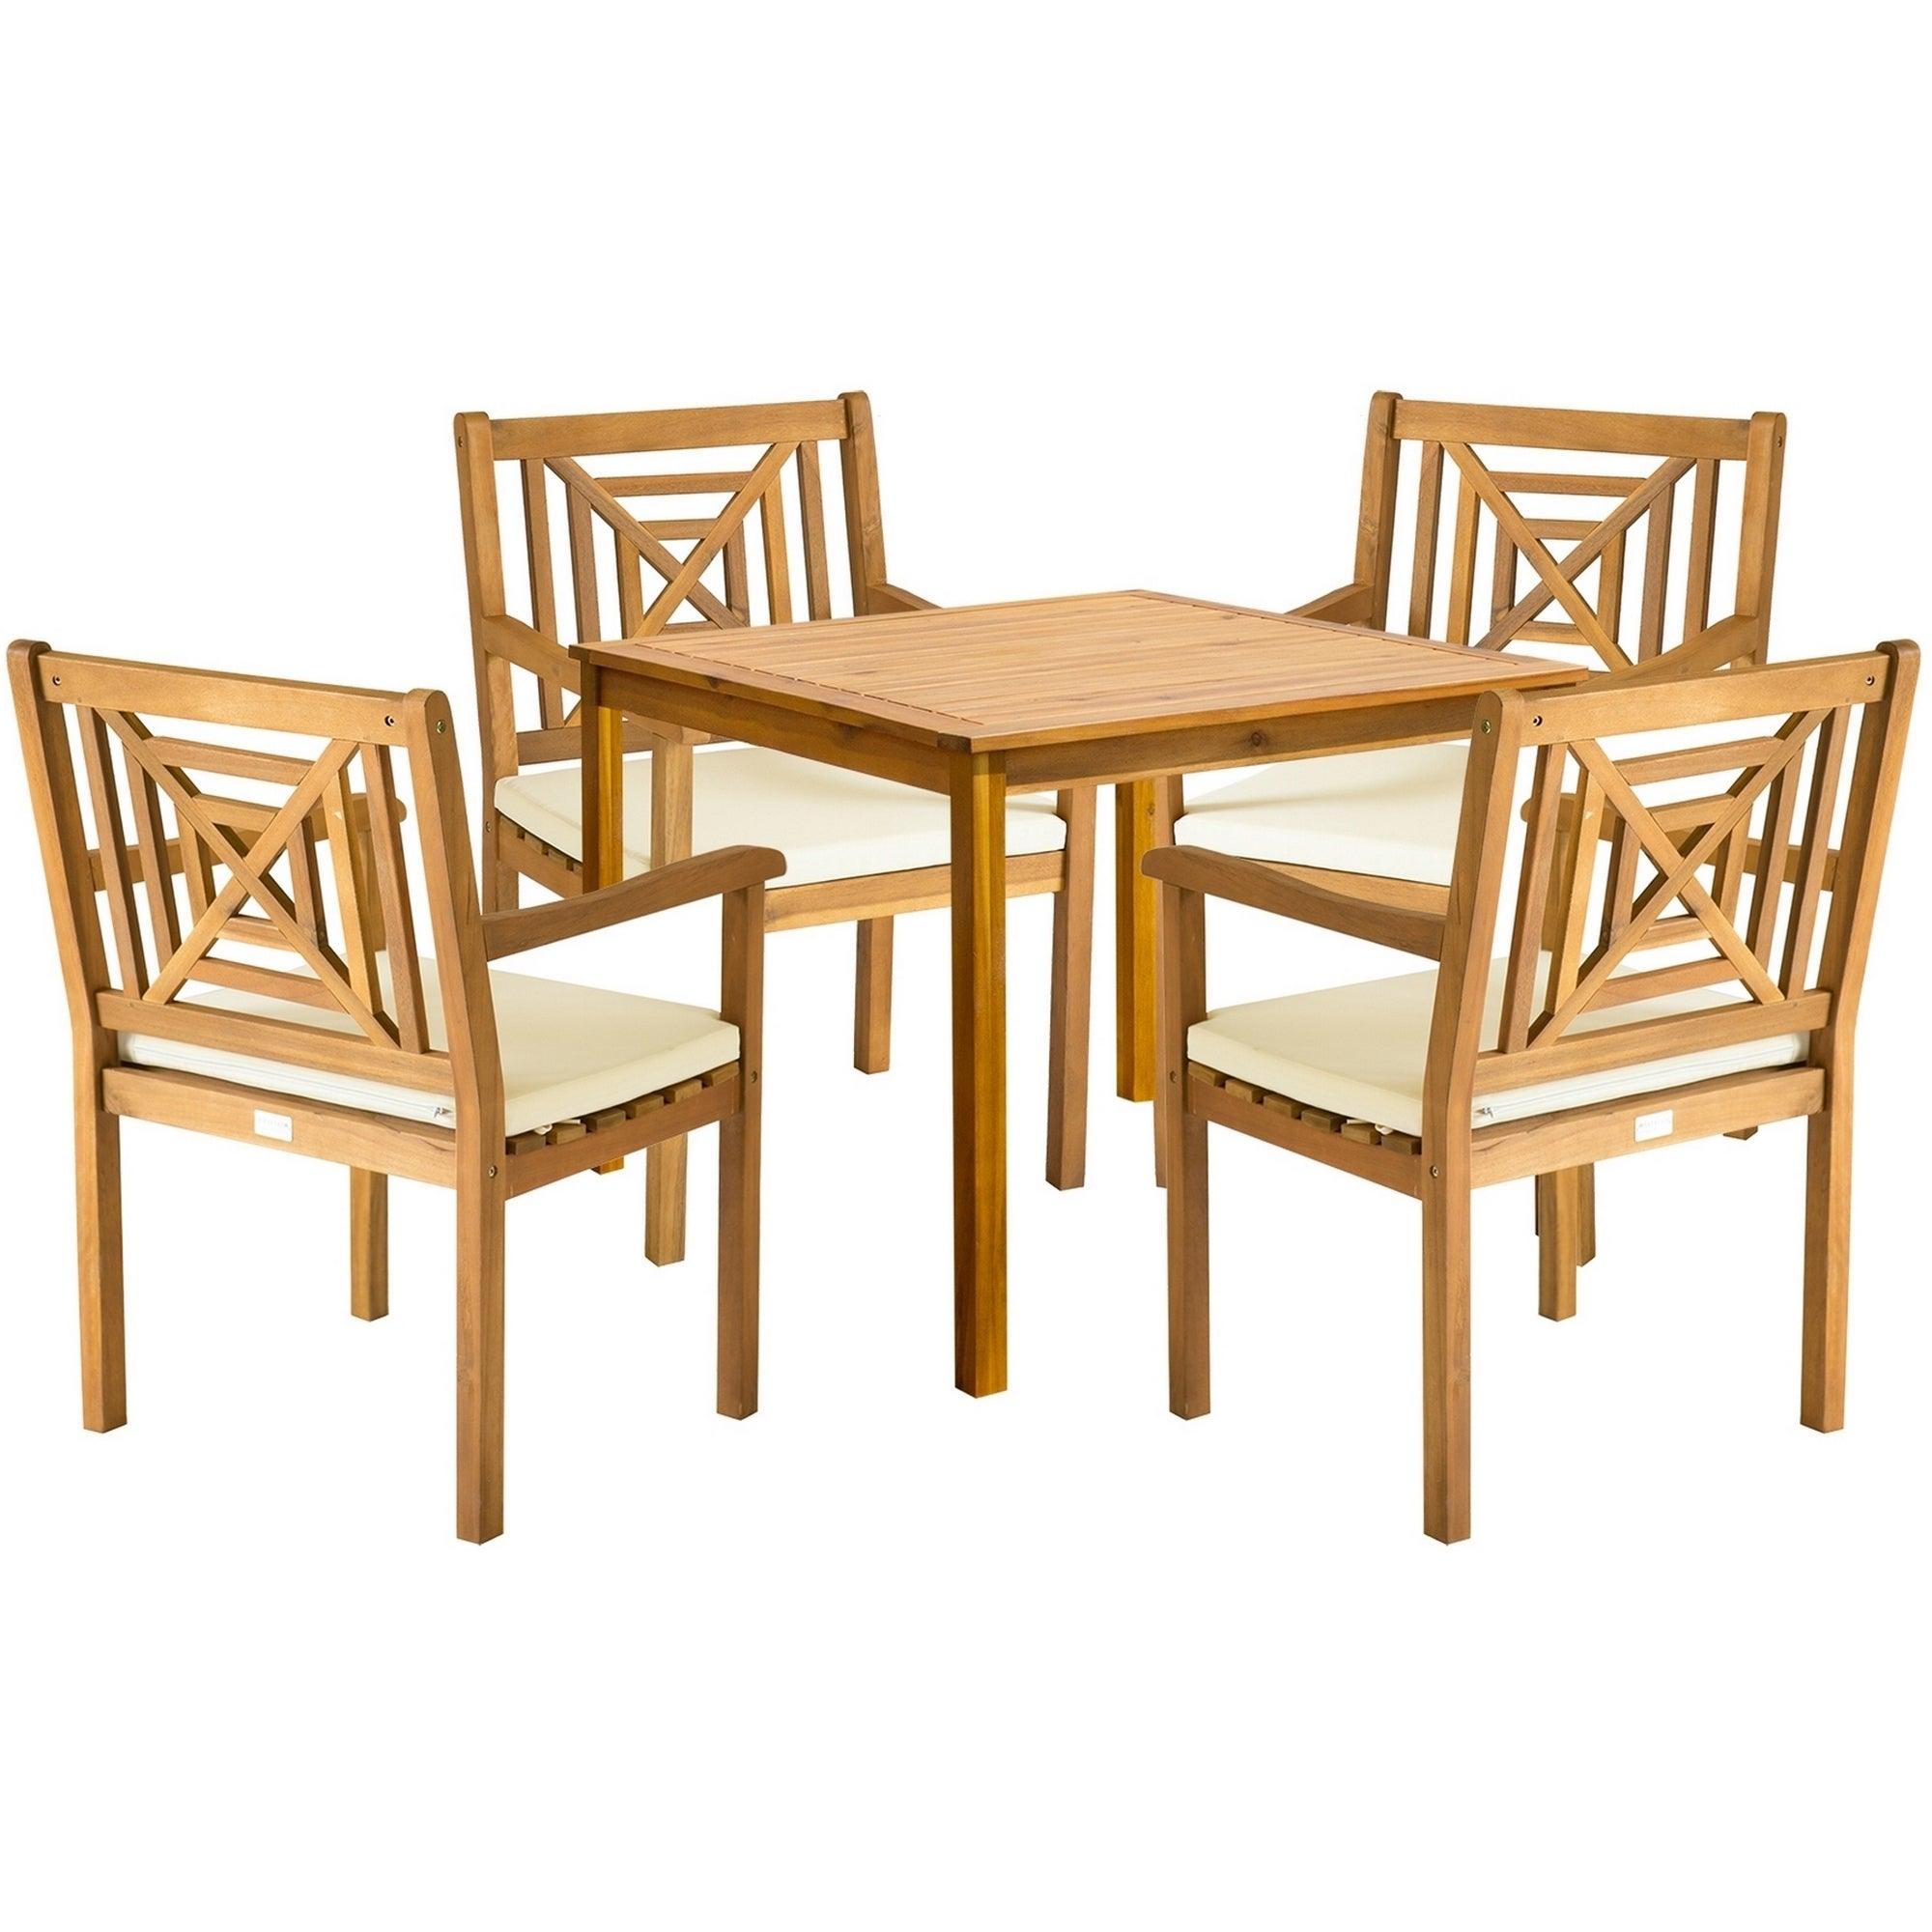 Safavieh Outdoor Living Del Mar Brown Acacia Wood 5 Piece Beige Cushion Dining Set With Recent Delmar 5 Piece Dining Sets (View 19 of 20)